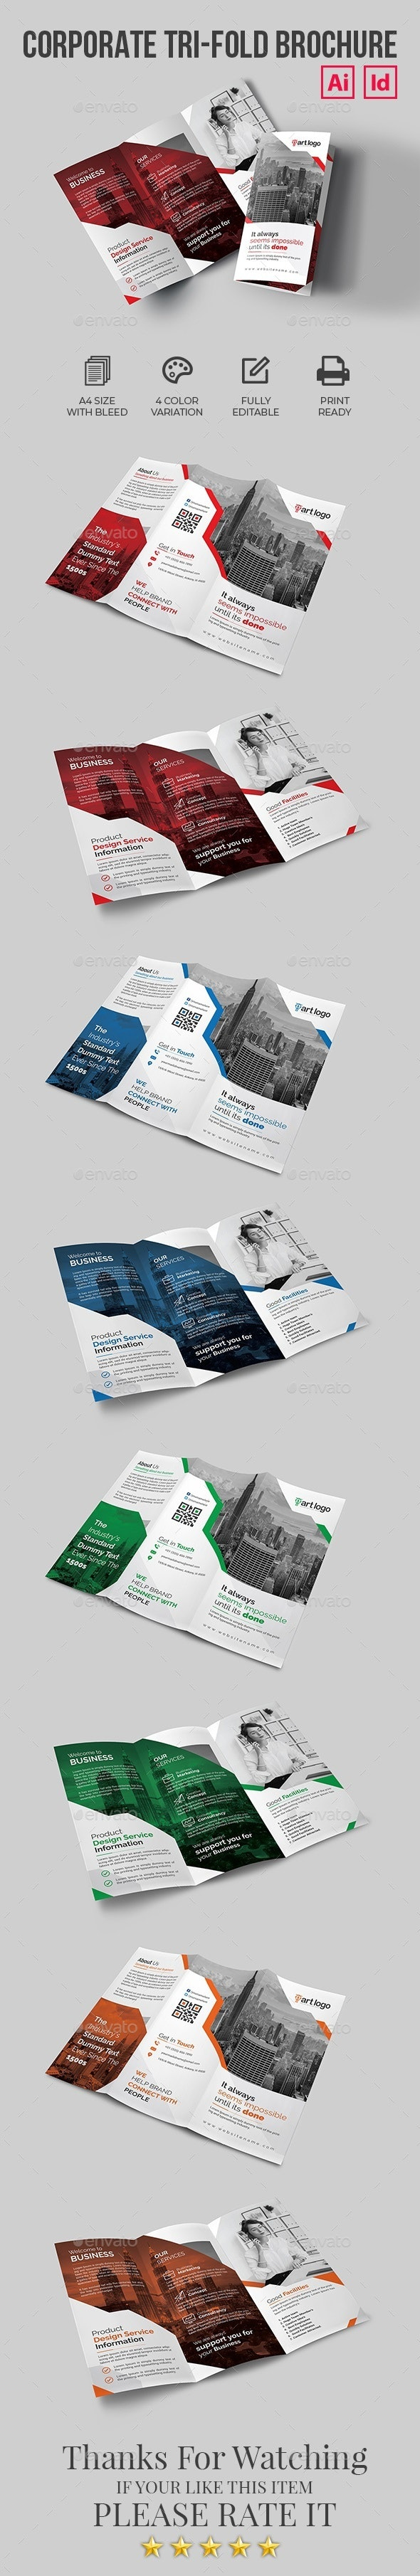 Corporate Trifold Brochure - Brochures Print Templates